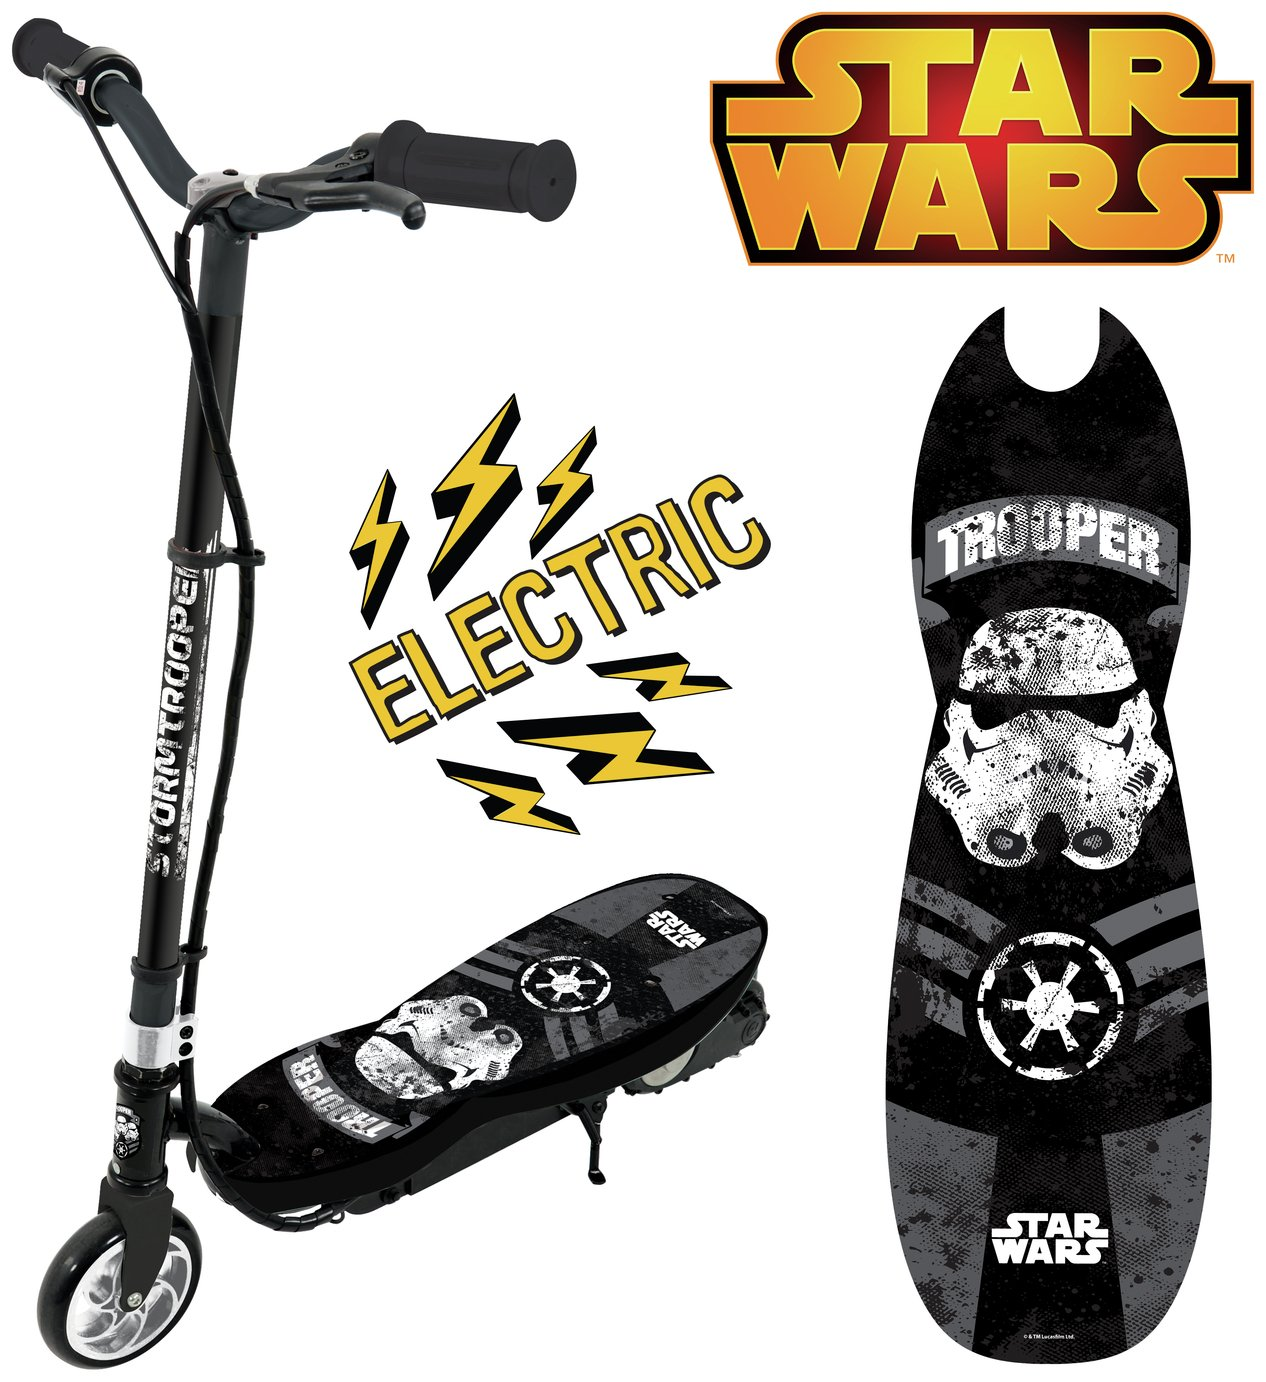 Star Wars Stormtrooper Electric Scooter